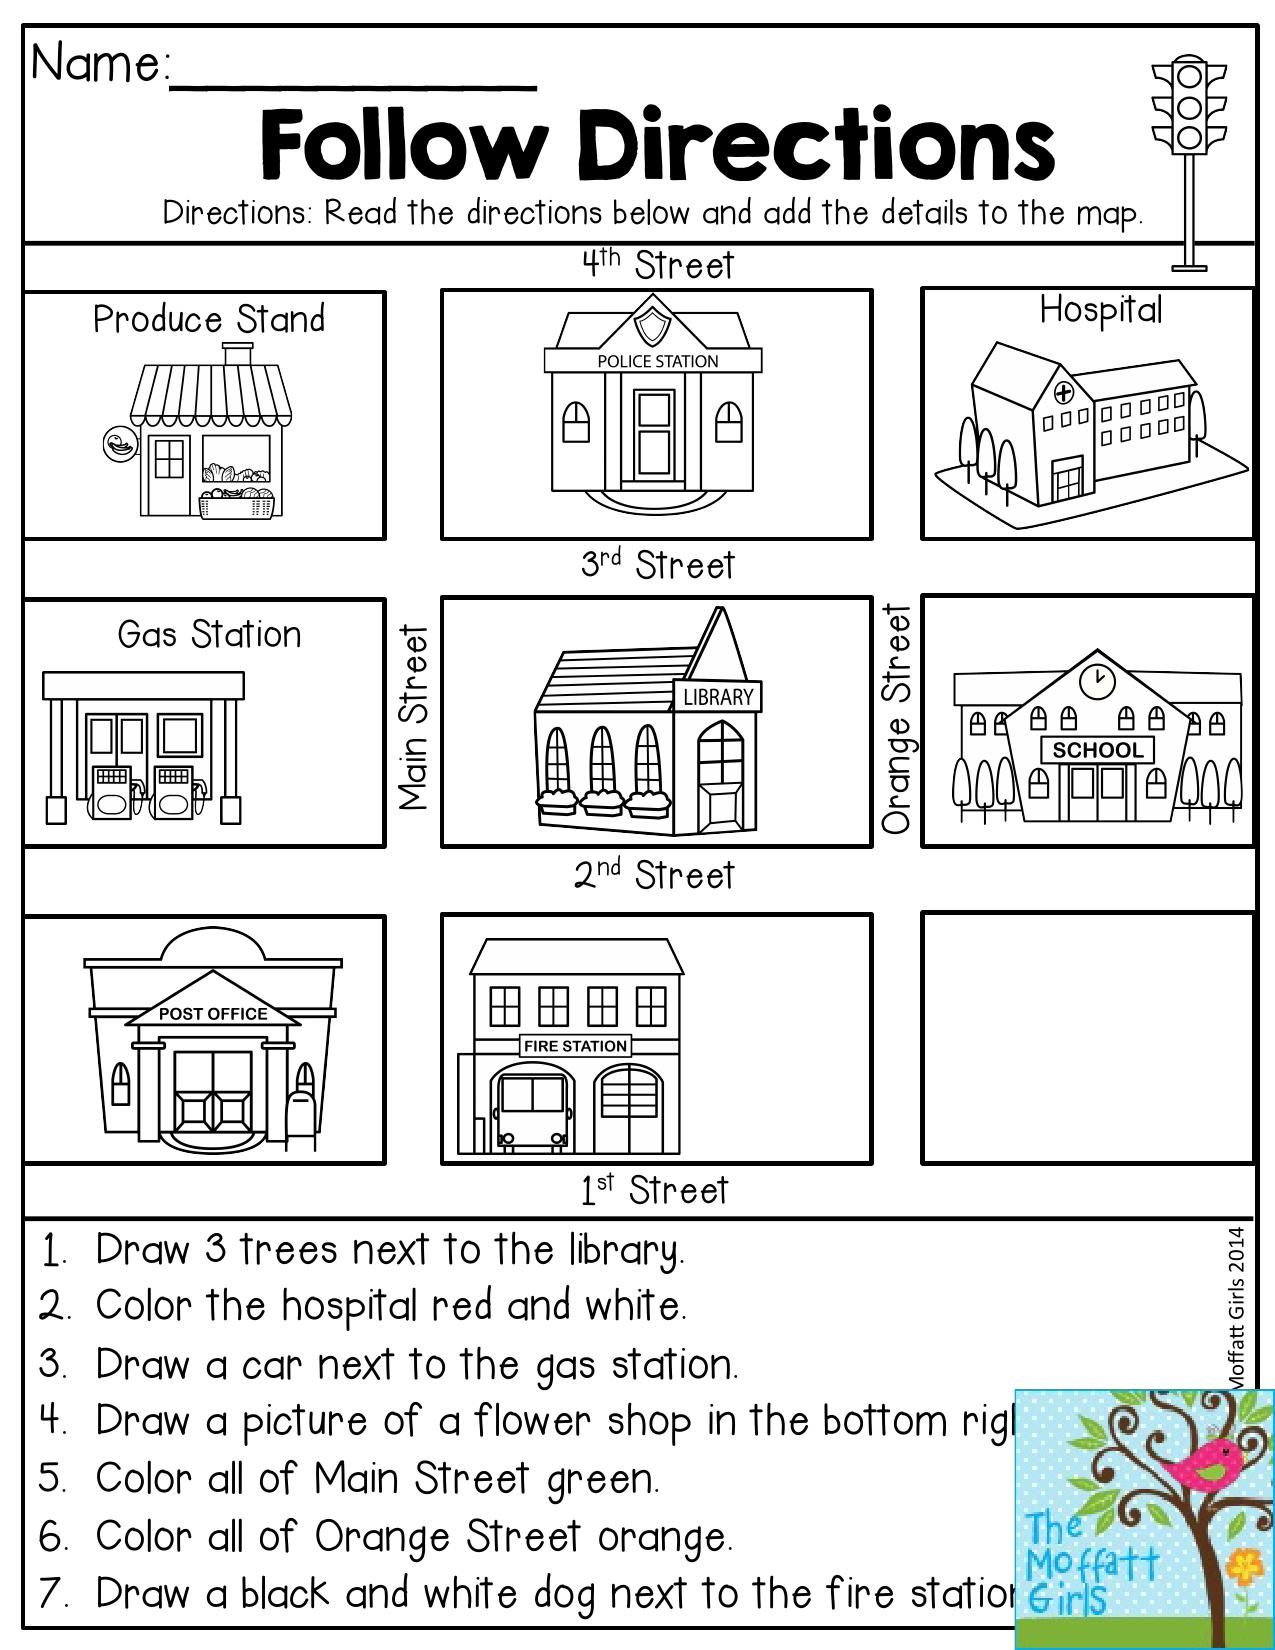 Worksheets Following Directions Worksheets For Middle School follow directions read the and add details to fun activity get students familiar with how a map works while teaching them directions